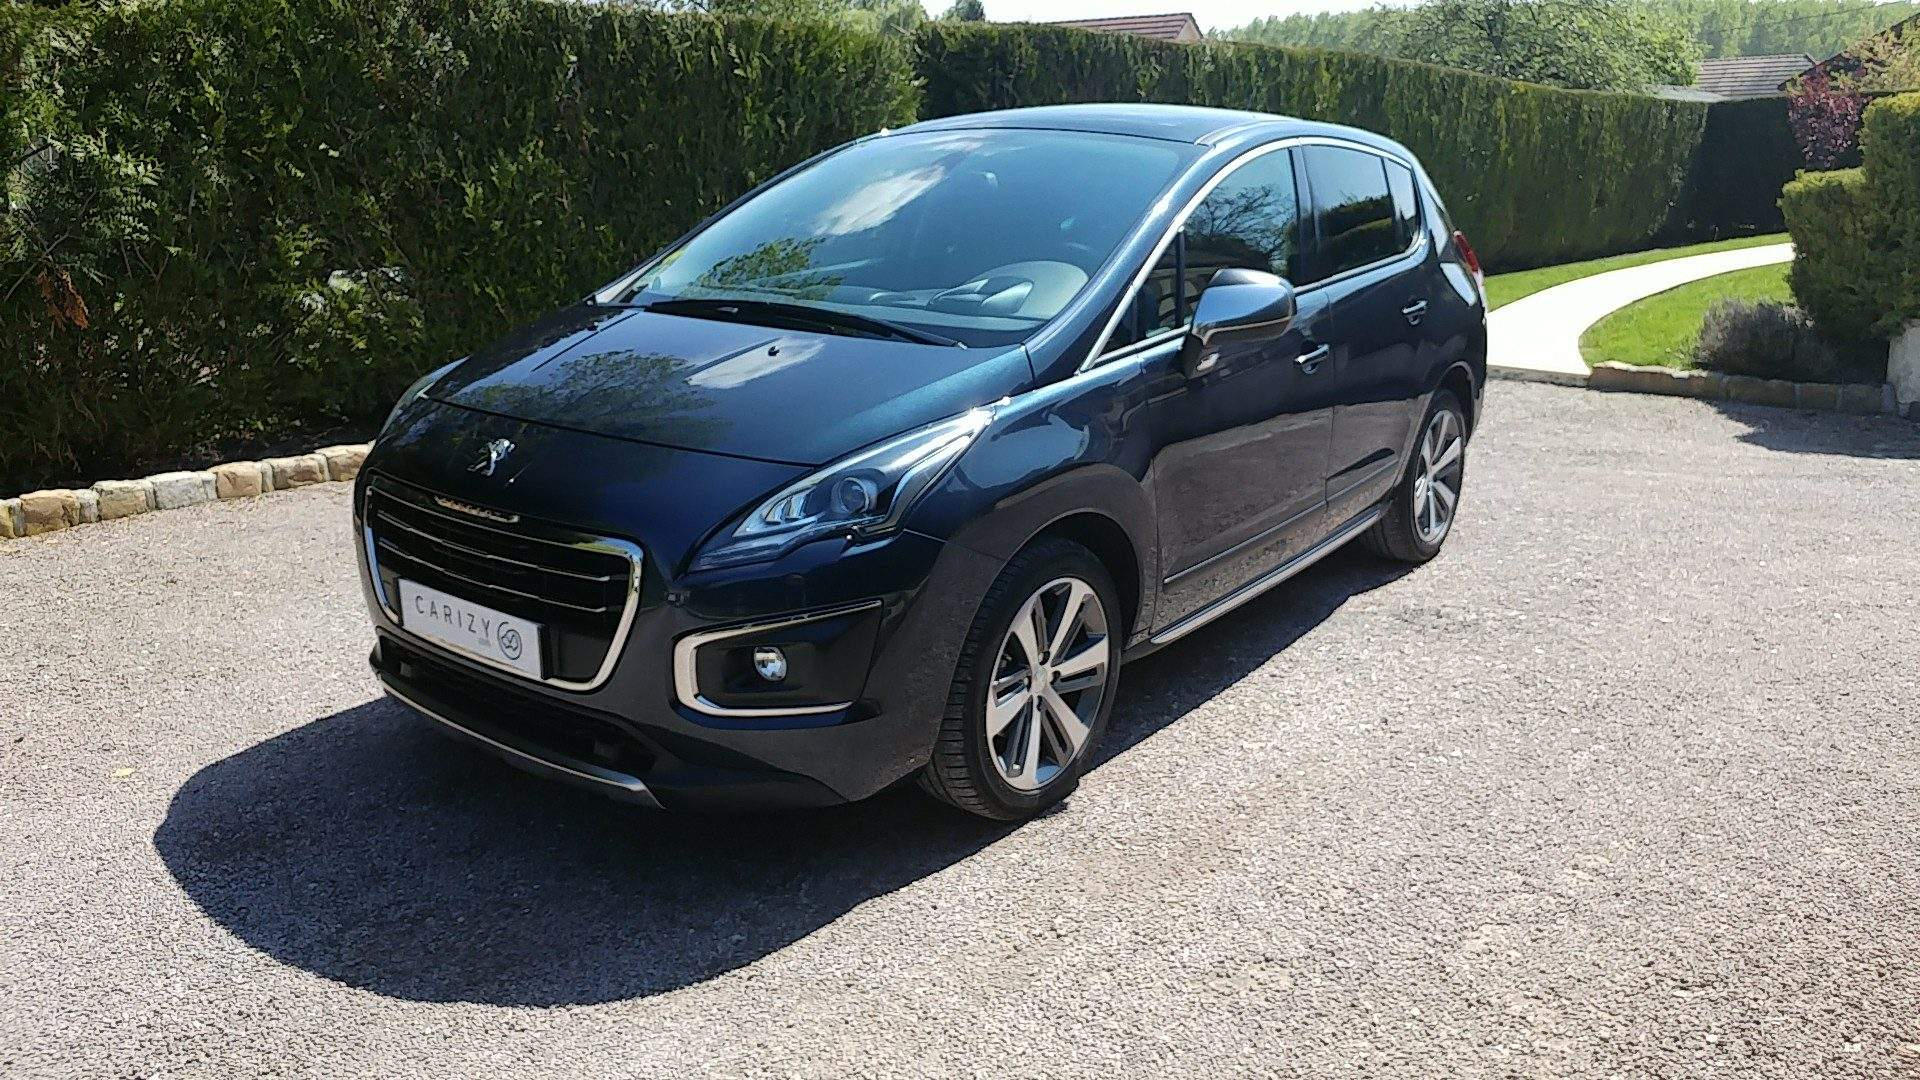 voiture peugeot 3008 2 0 hdi 150 feline occasion diesel 2014 35000 km 18490 paris. Black Bedroom Furniture Sets. Home Design Ideas